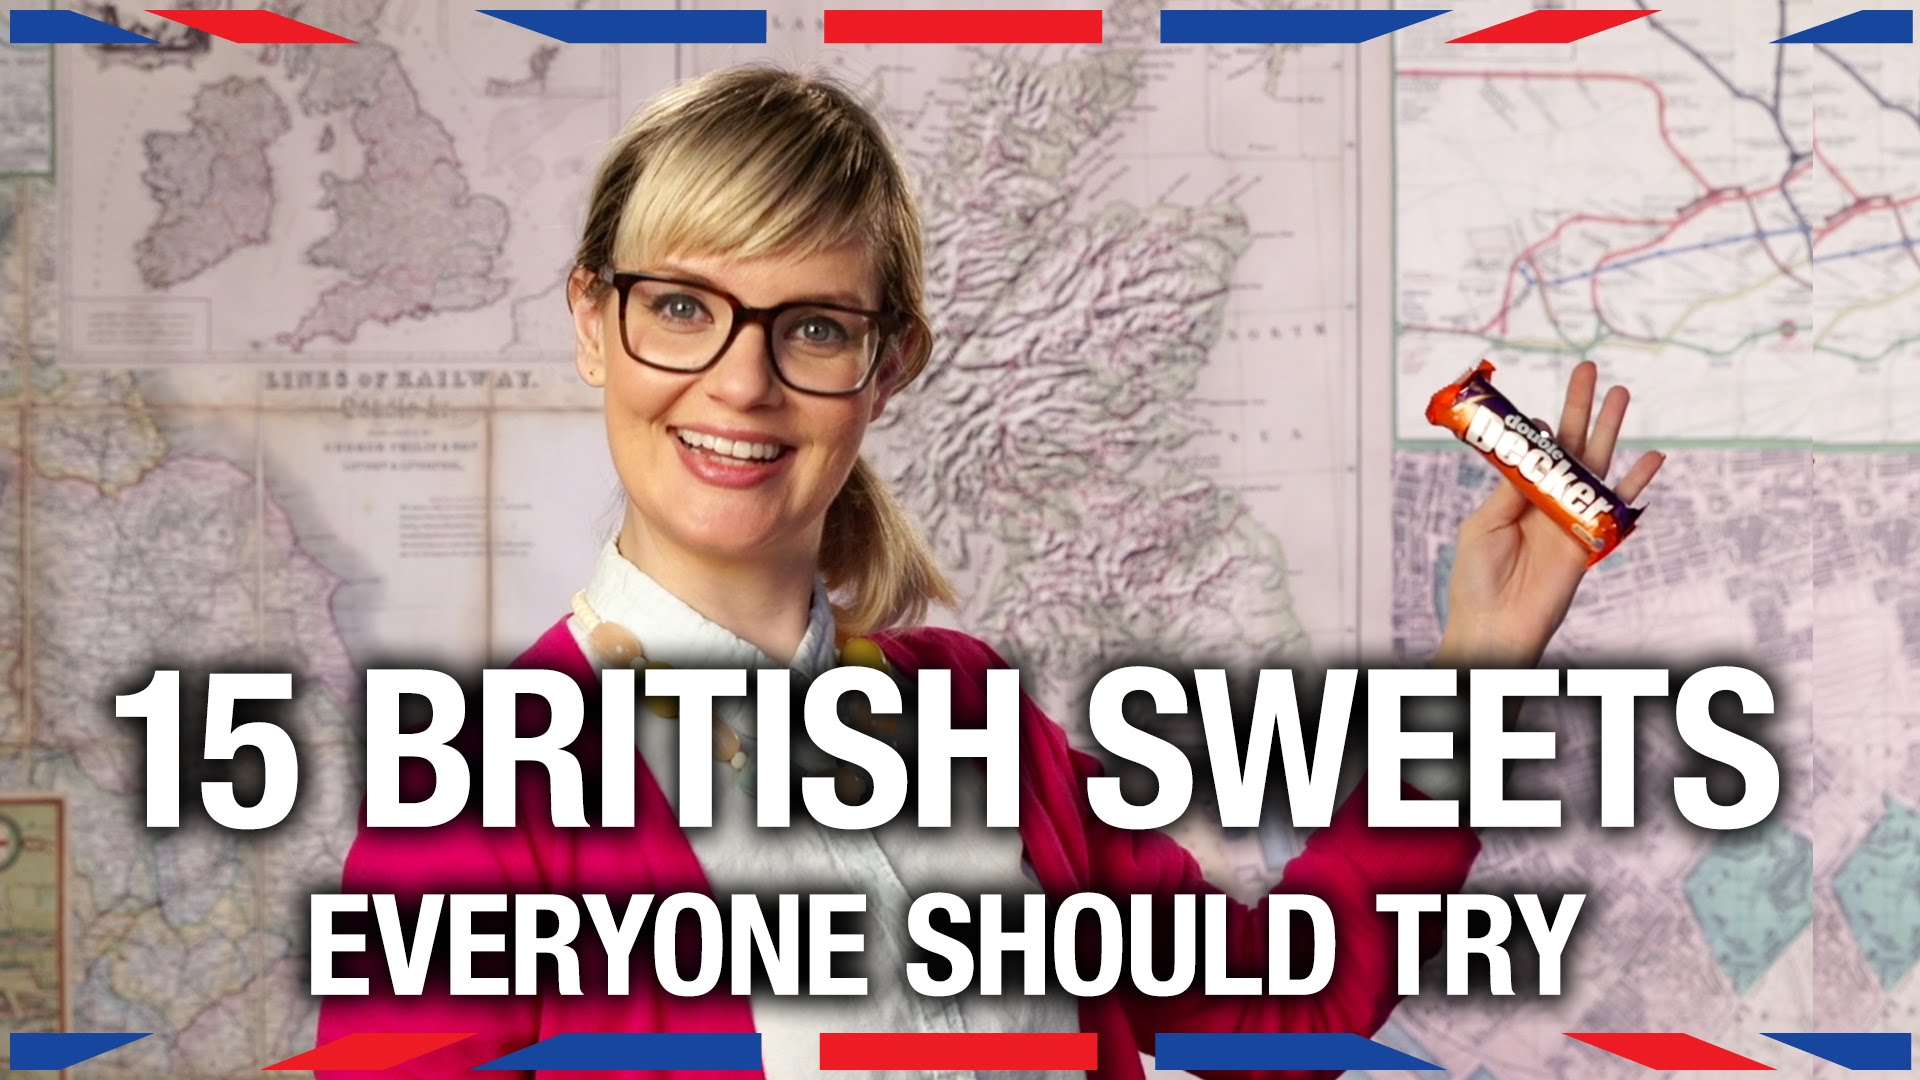 'Anglophenia' Host Siobhan Thompson Shares Her Thoughts About Several Iconic British Sweets